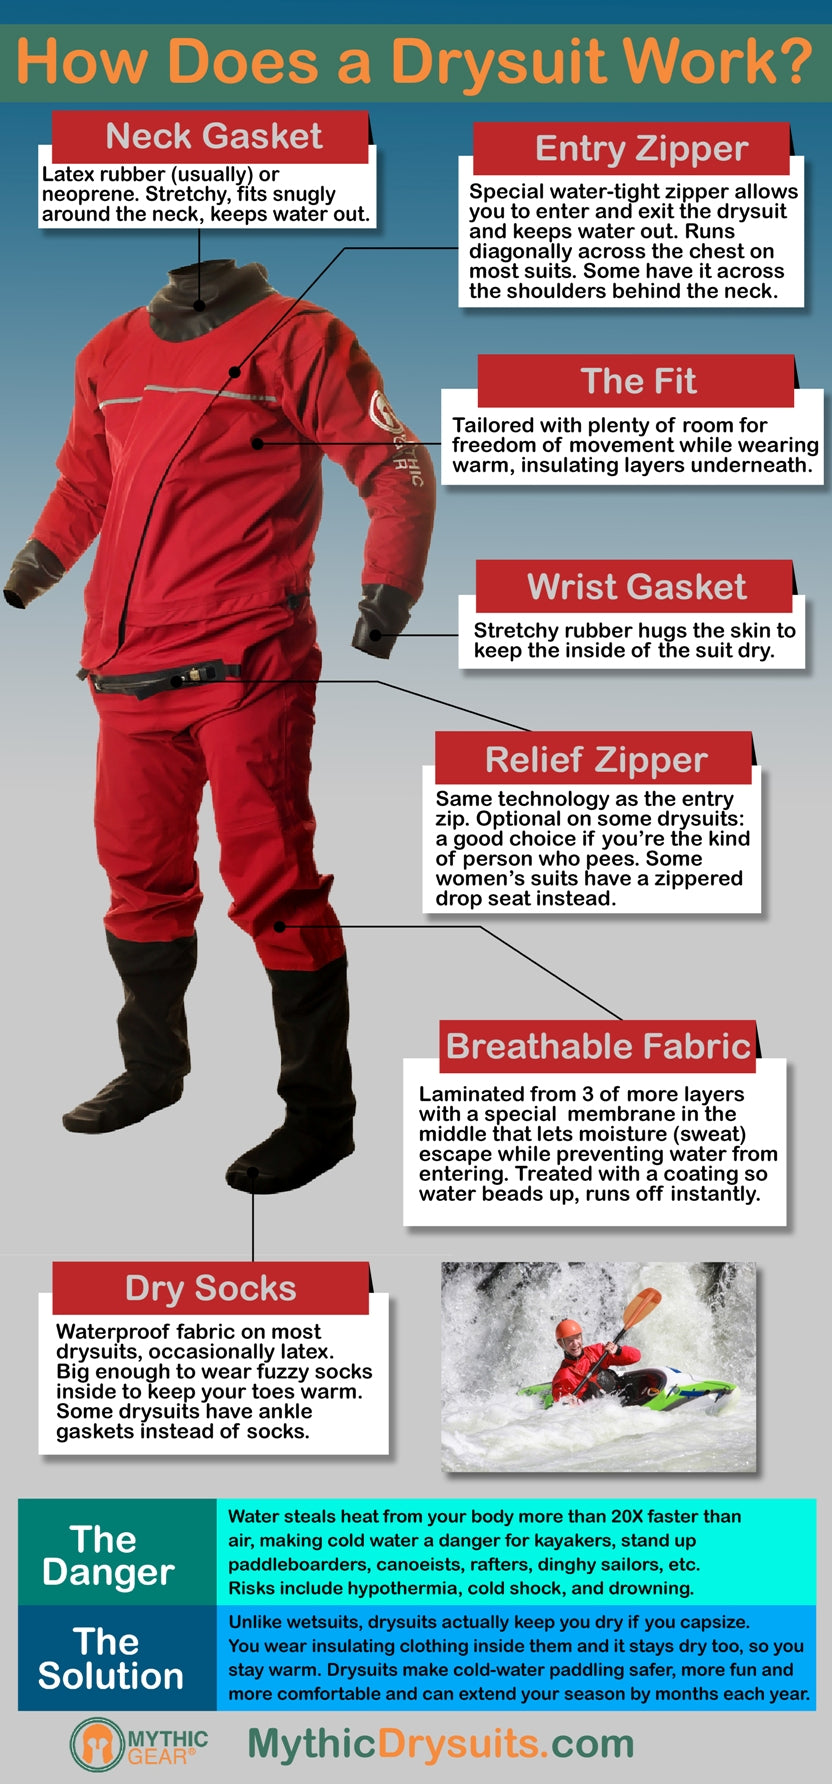 Mythic Gear drysuit infographic